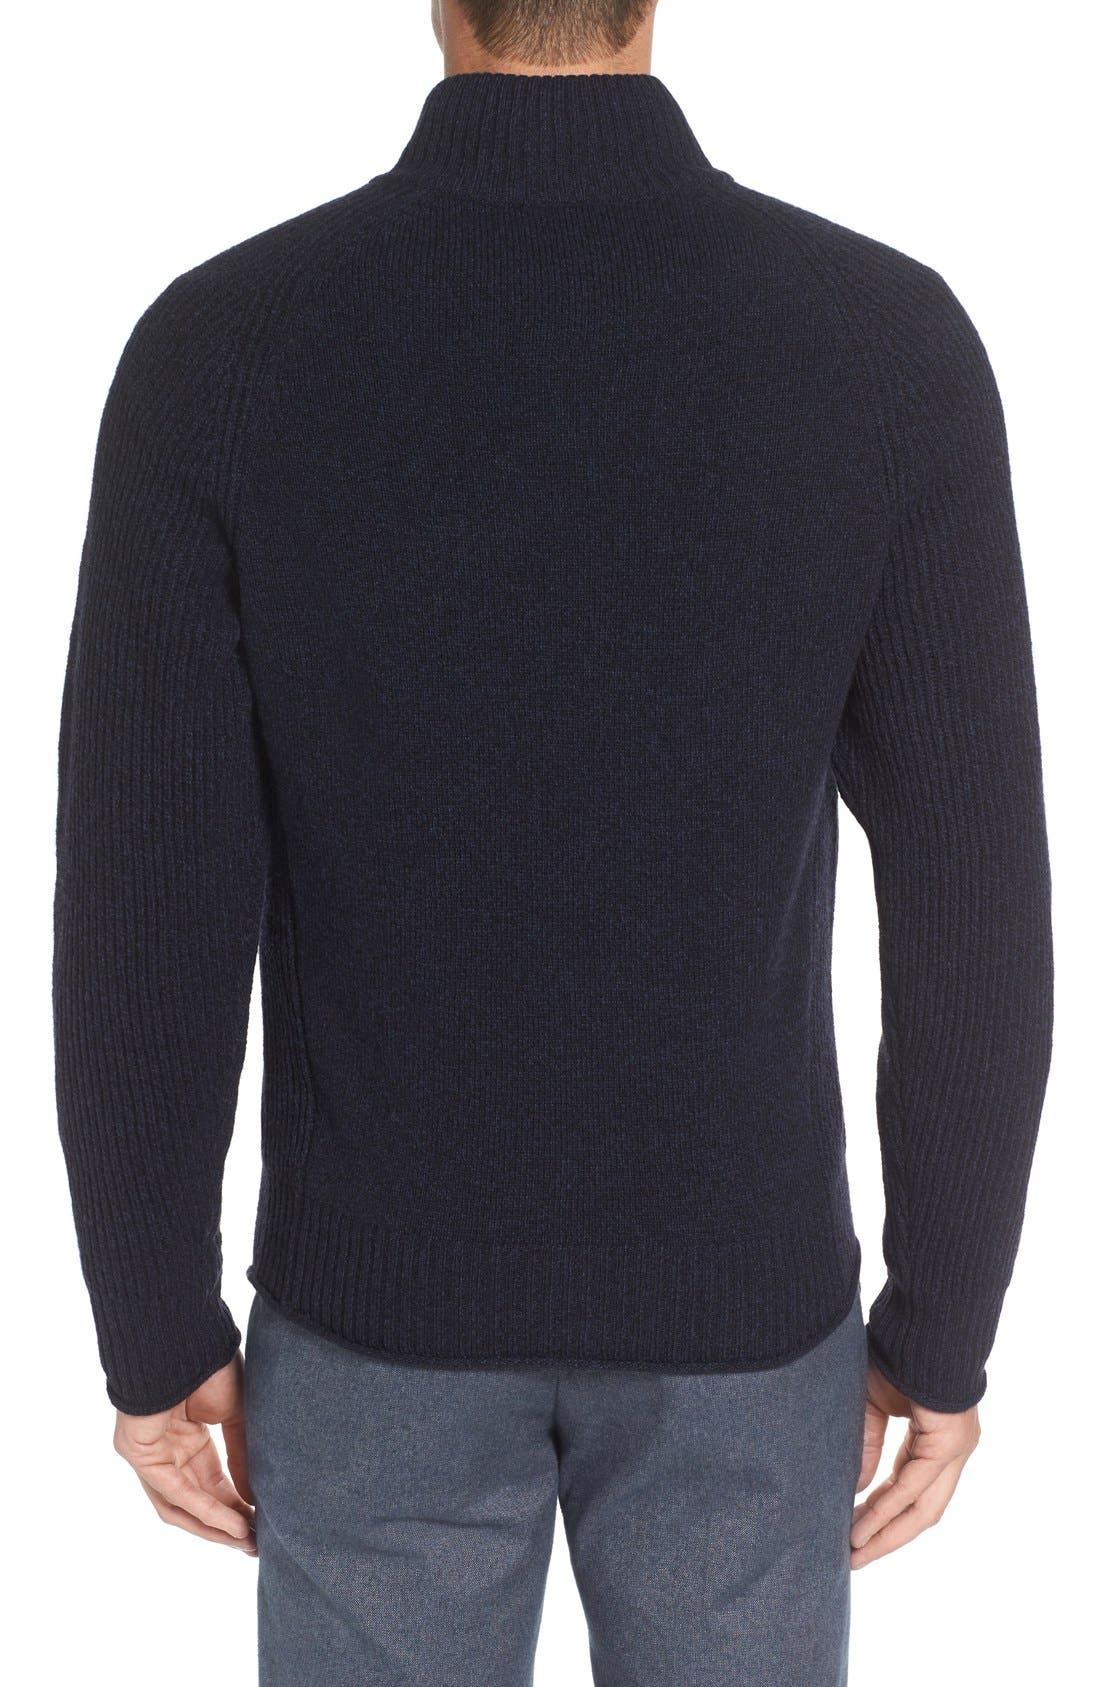 Stredwick Lambswool Sweater,                             Alternate thumbnail 2, color,                             Midnight